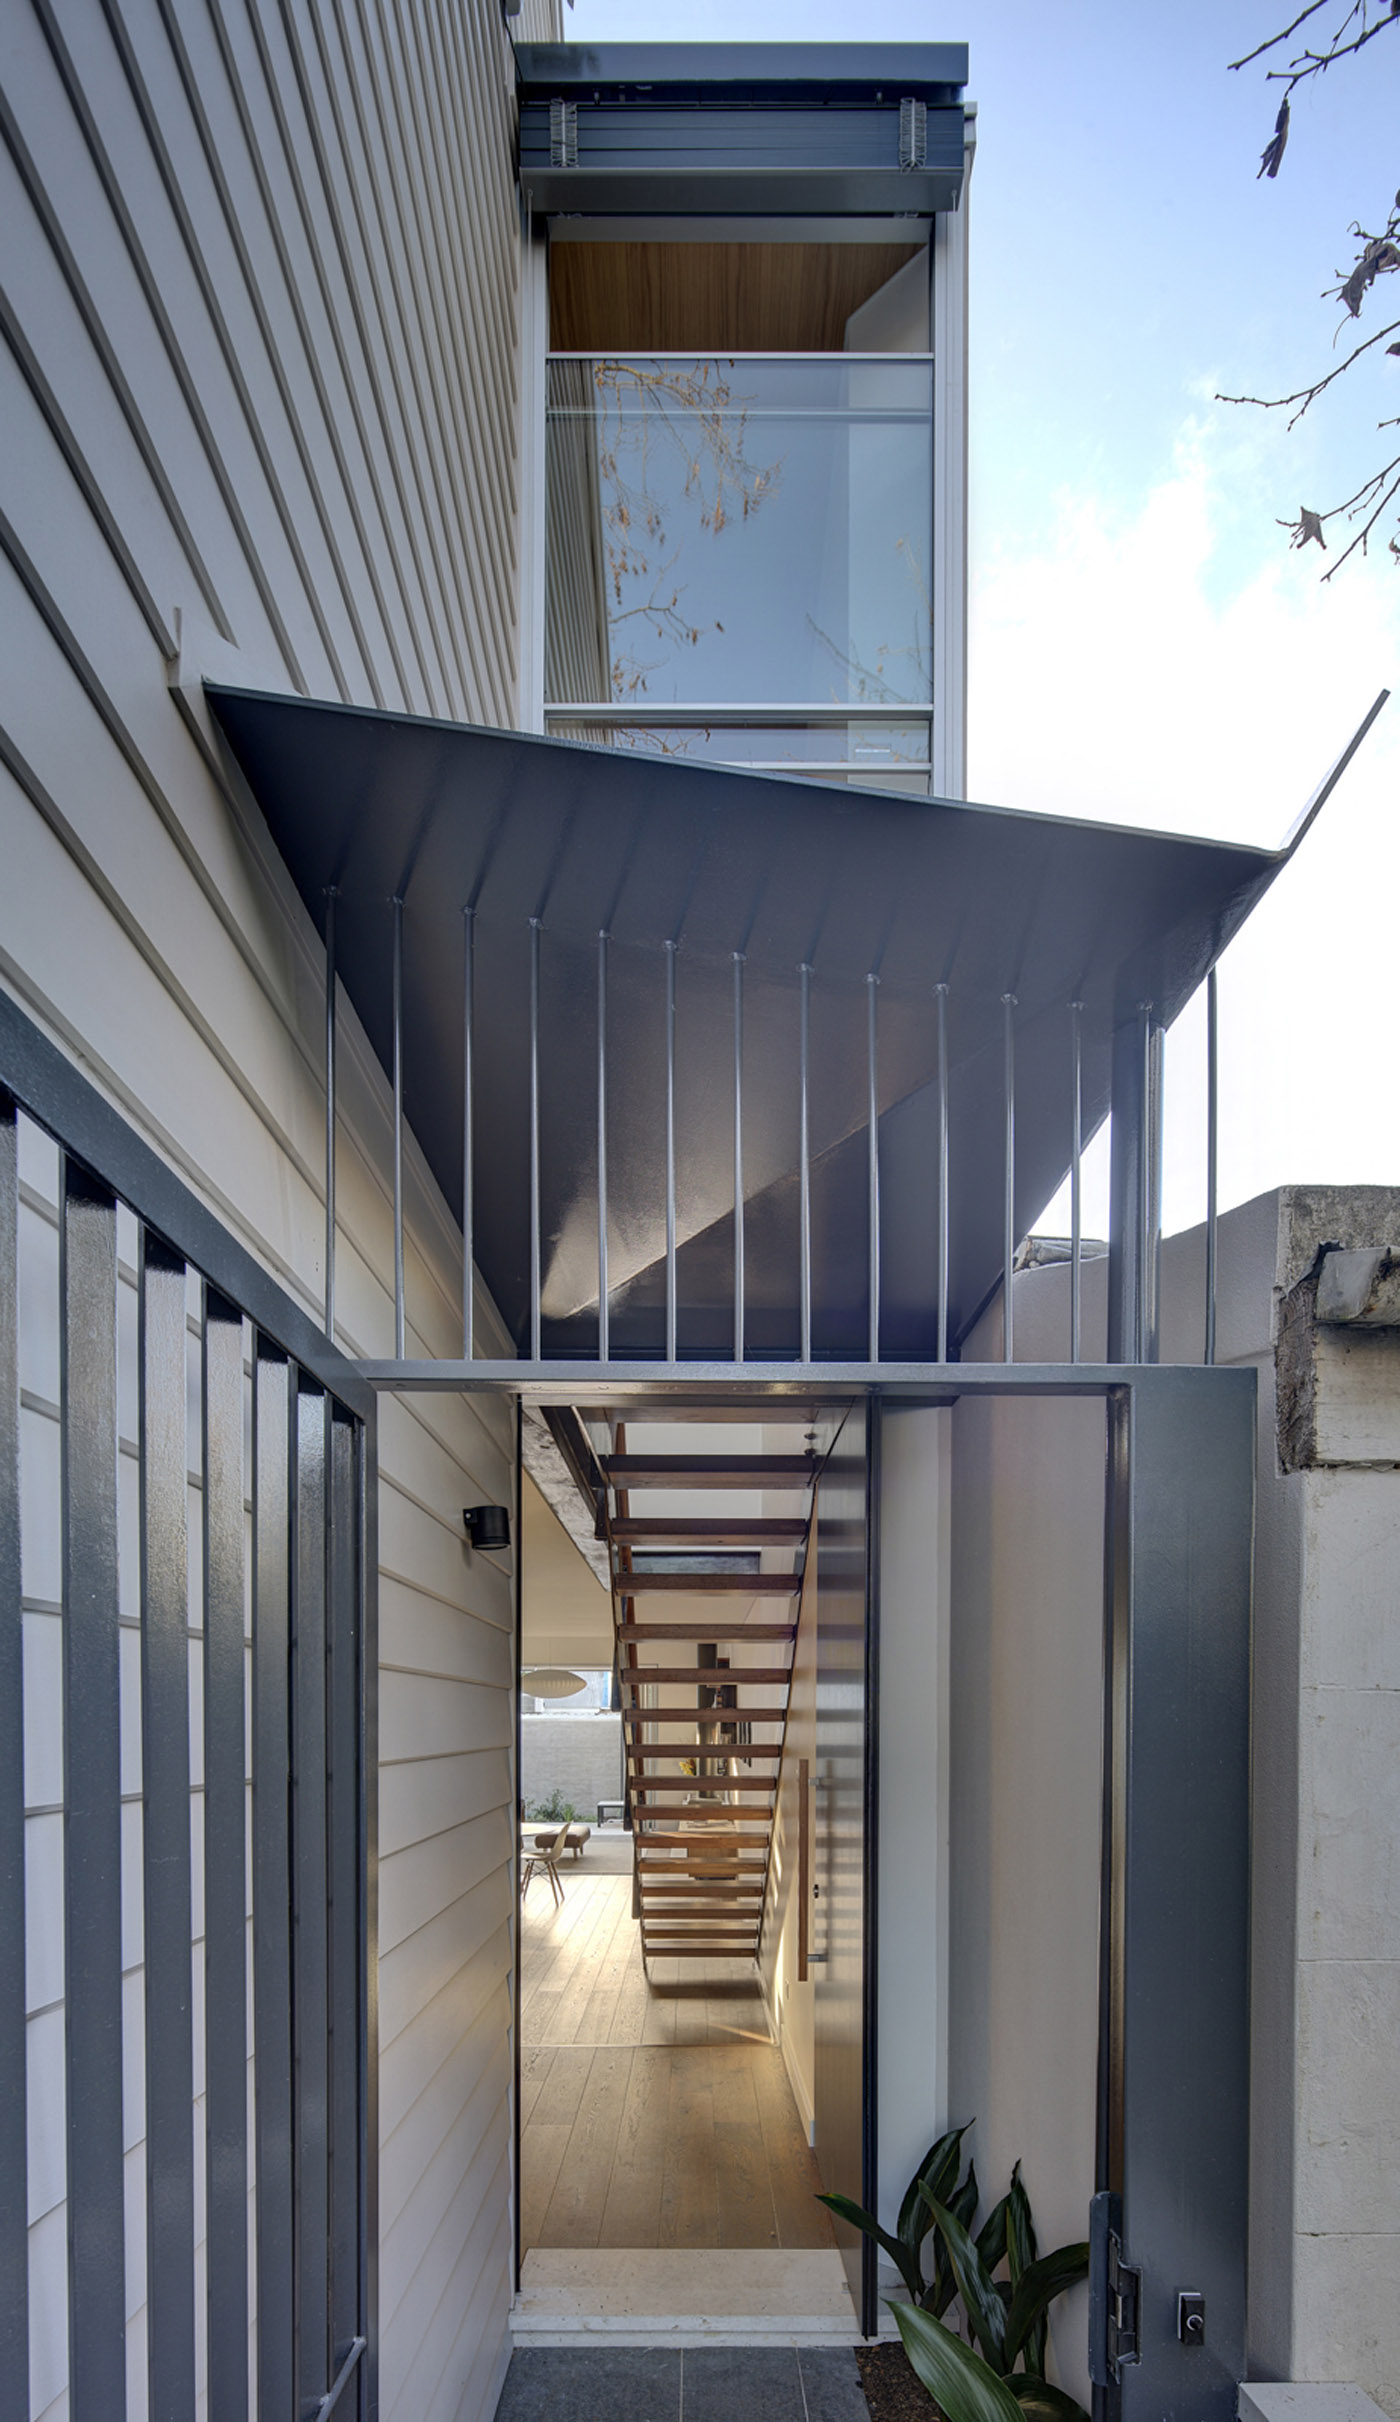 Gandha Kariappa Terrace by Sydney residential architects Sam Crawford Architects. View from entry into light-filled timber interiors